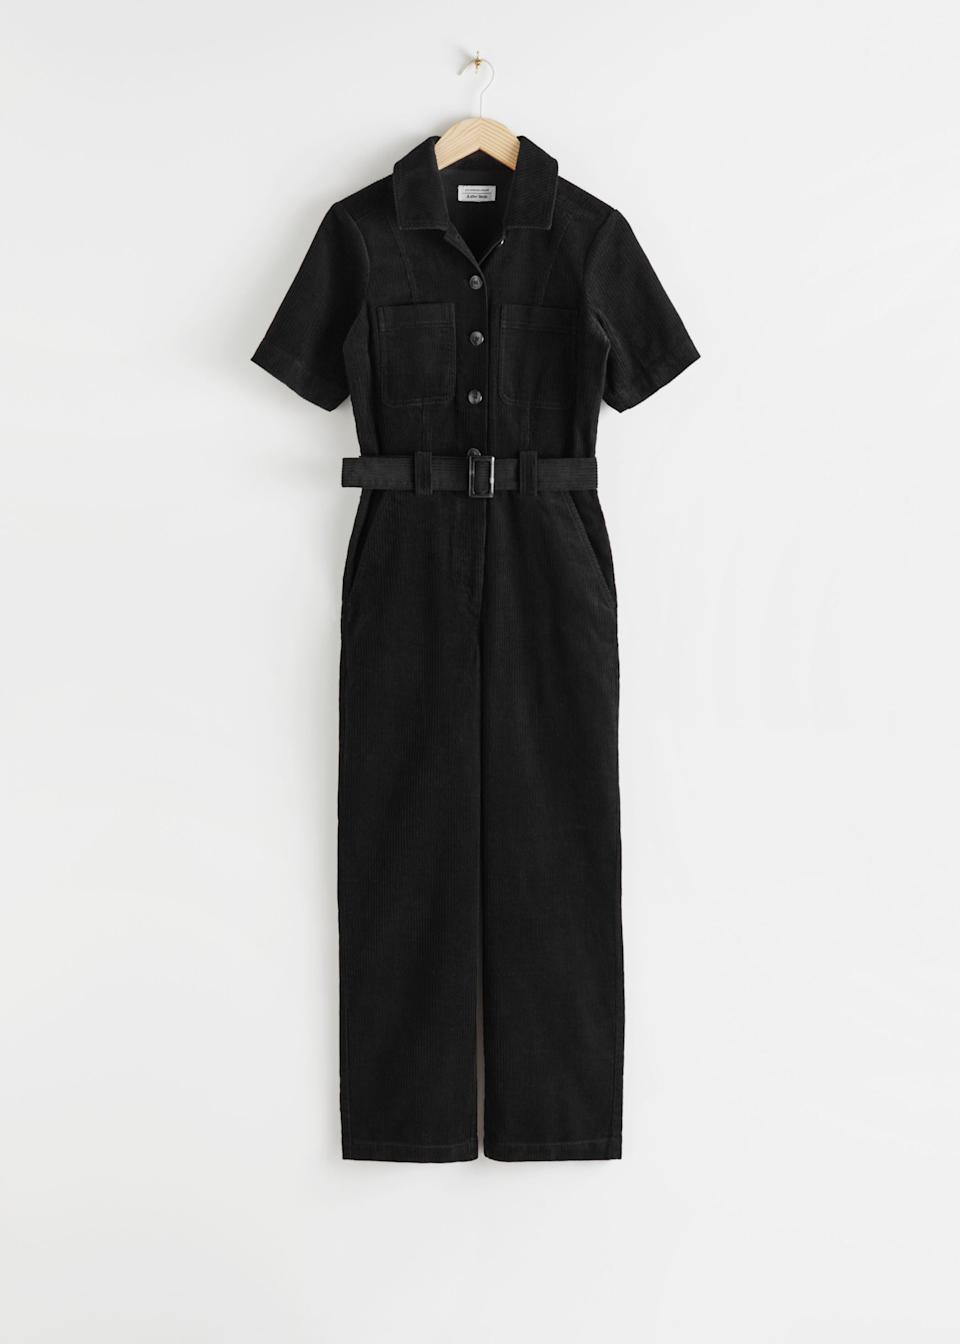 "<br><br><strong>& Other Stories</strong> Corduroy Buckle Belt Jumpsuit, $, available at <a href=""https://go.skimresources.com/?id=30283X879131&url=https%3A%2F%2Fwww.stories.com%2Fen_usd%2Fclothing%2Fjumpsuits-playsuits%2Fproduct.corduroy-buckle-belt-jumpsuit-black.0816014001.html"" rel=""nofollow noopener"" target=""_blank"" data-ylk=""slk:& Other Stories"" class=""link rapid-noclick-resp"">& Other Stories</a>"